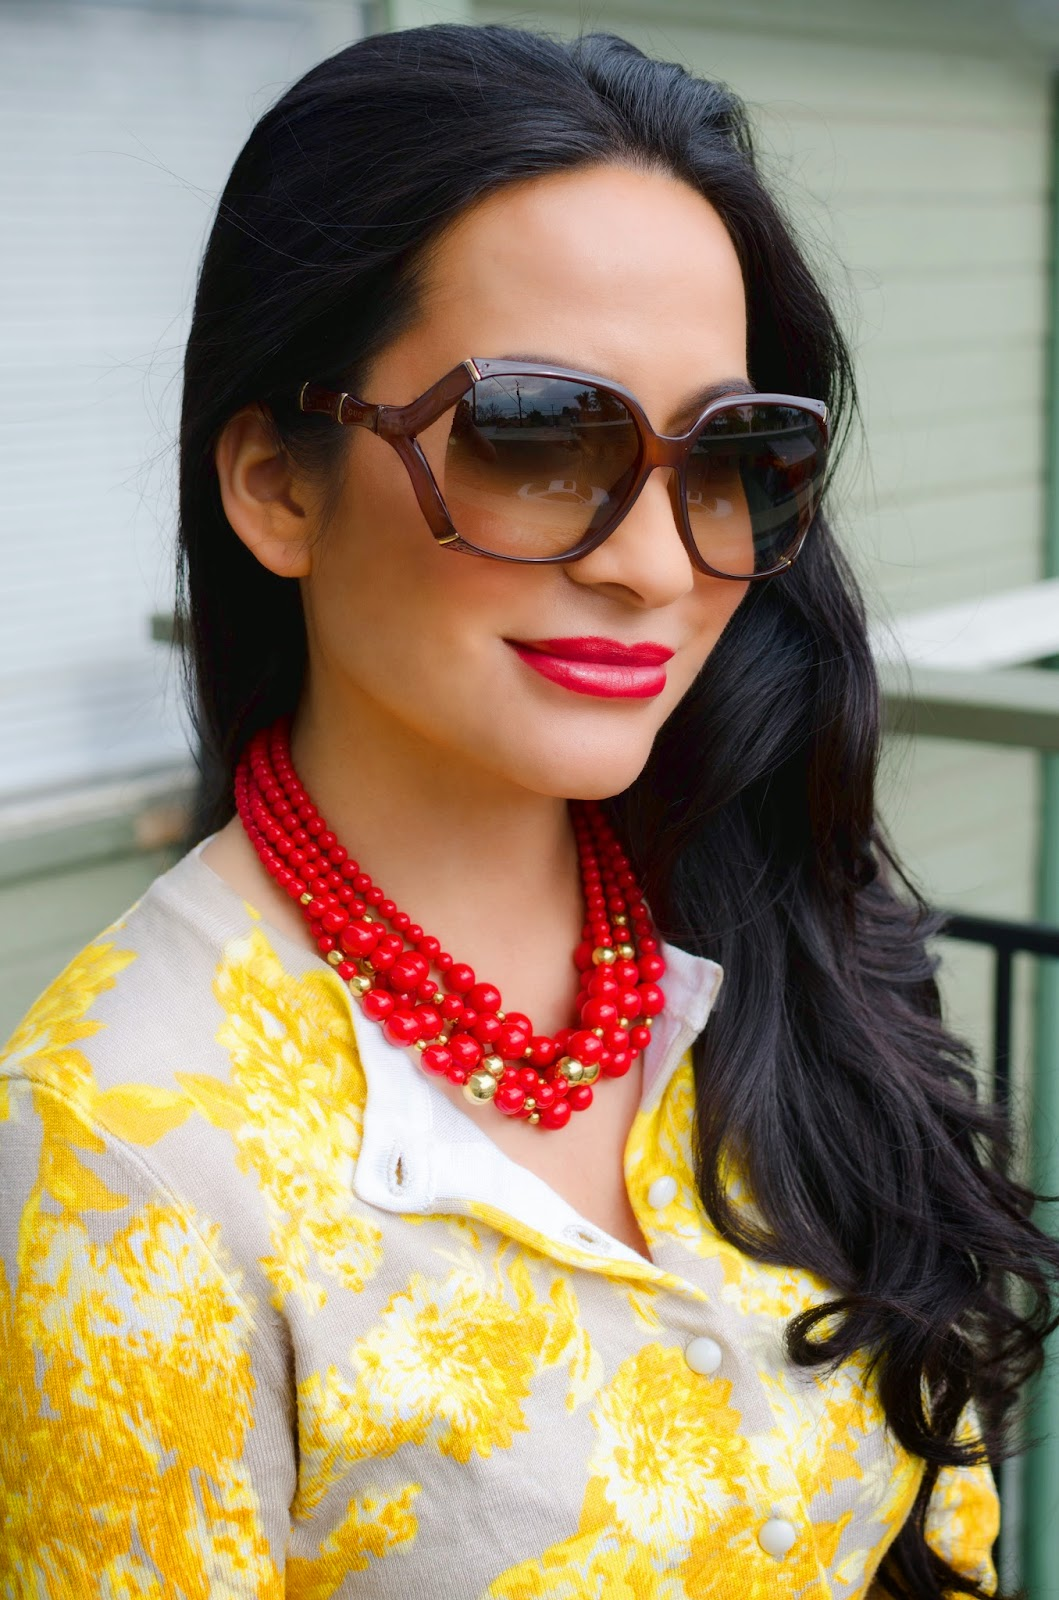 red and yellow sweater Gucci sunglasses Liz Claiborne necklace